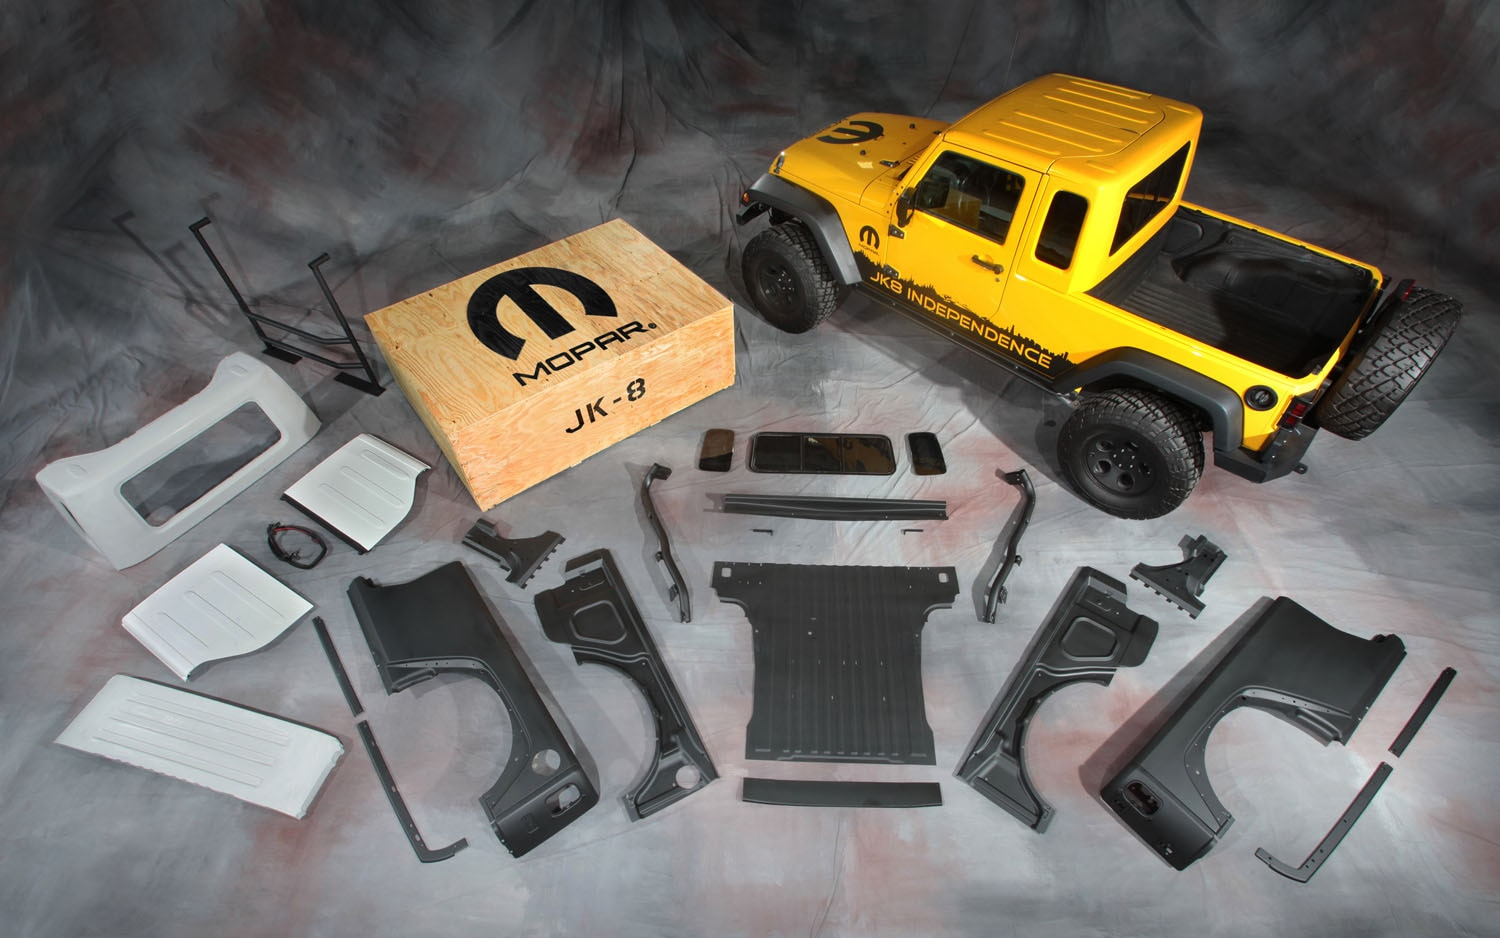 jeep offers jk-8 pickup truck conversion for wrangler priced at $5499